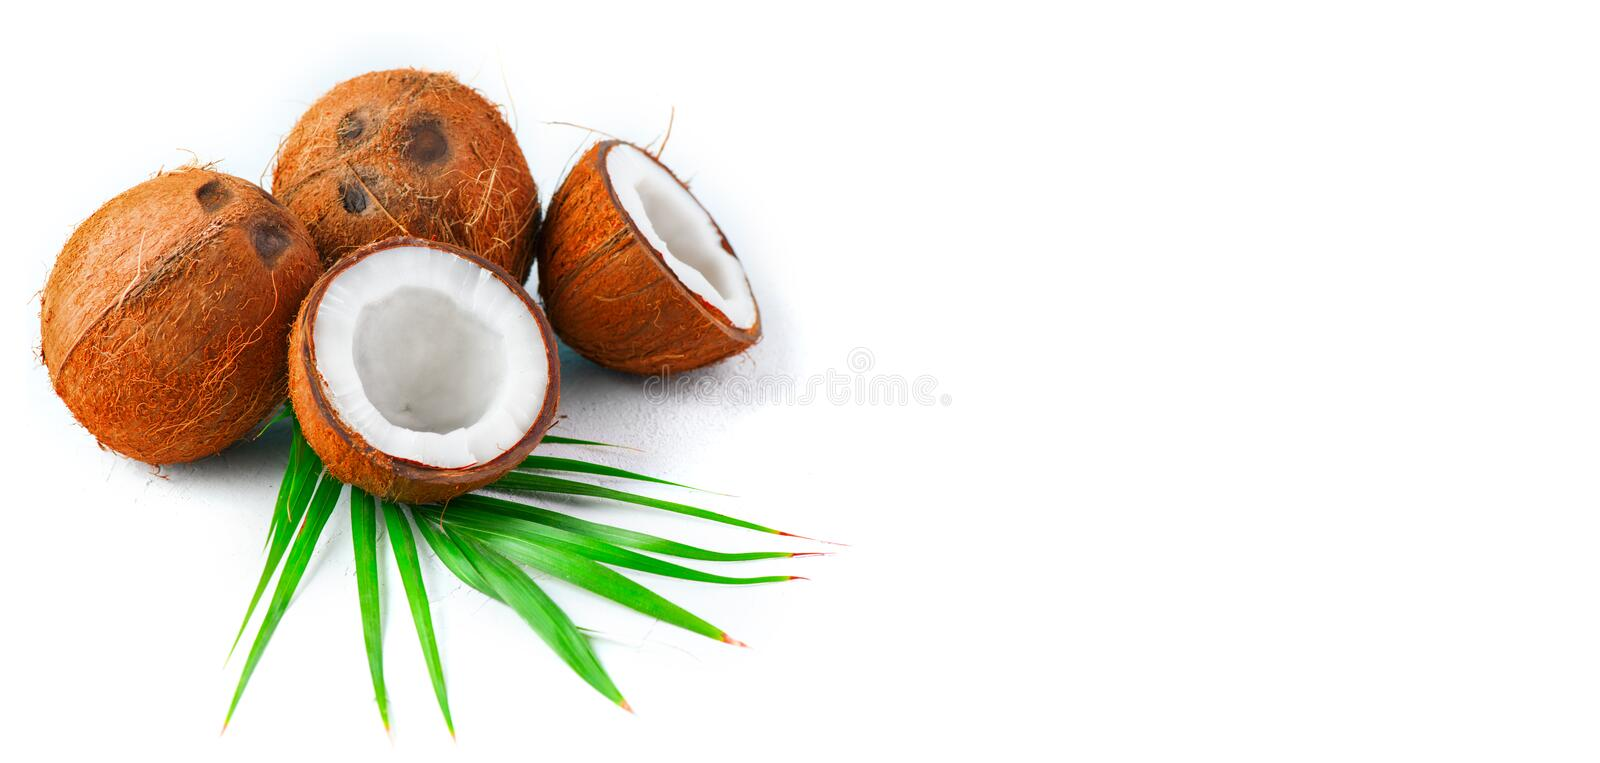 Coconut with coconuts palm tree leaf isolated on a white background. Border design. Wide angle. Fresh raw organic half of coco nut. Healthy Food, skin care royalty free stock photos